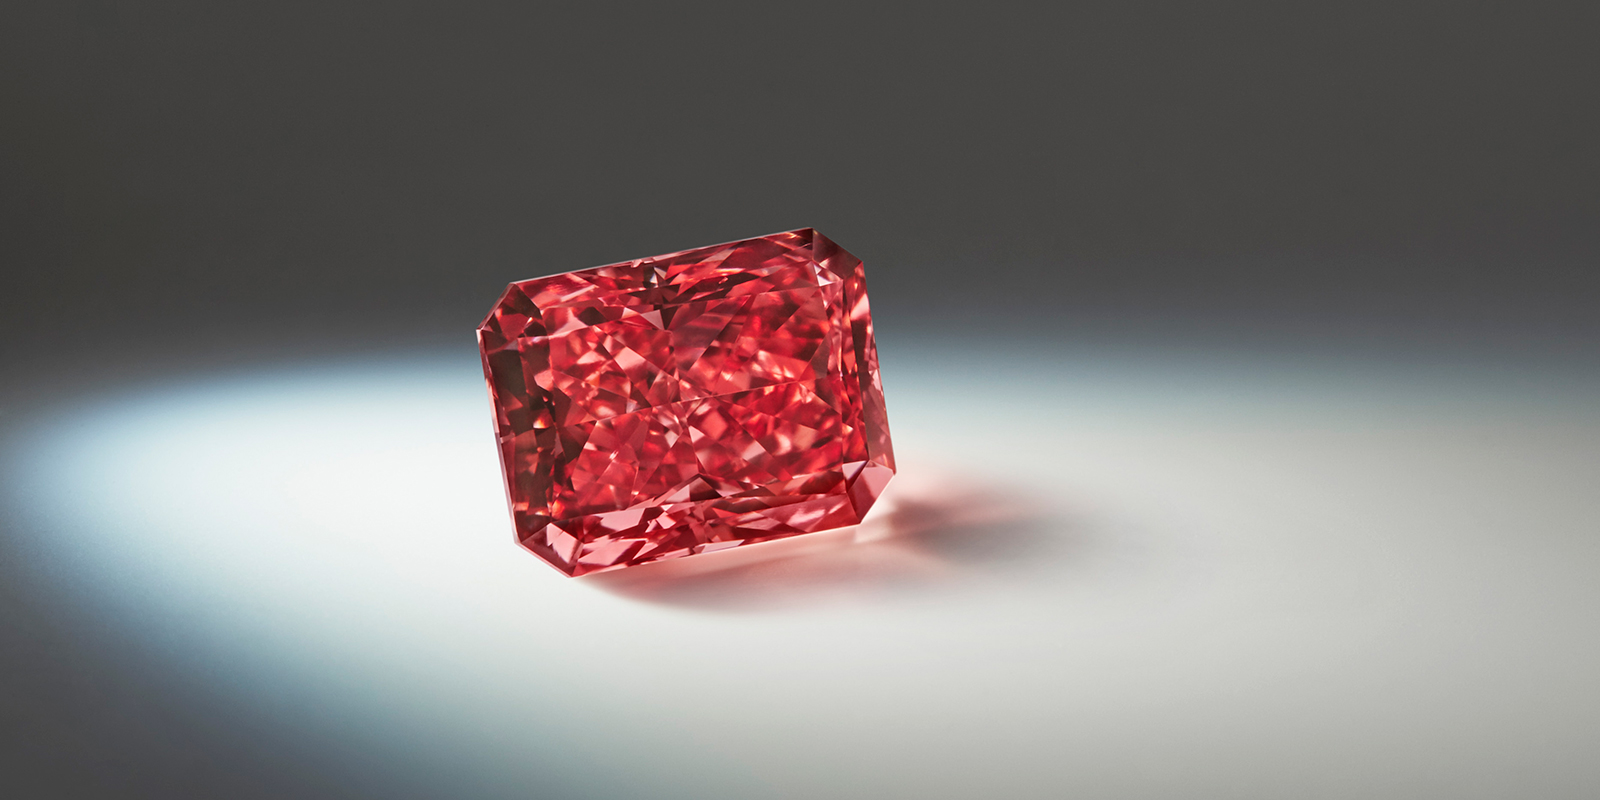 The Fancy Red Argyle Everglow Diamond (2.11 cts)